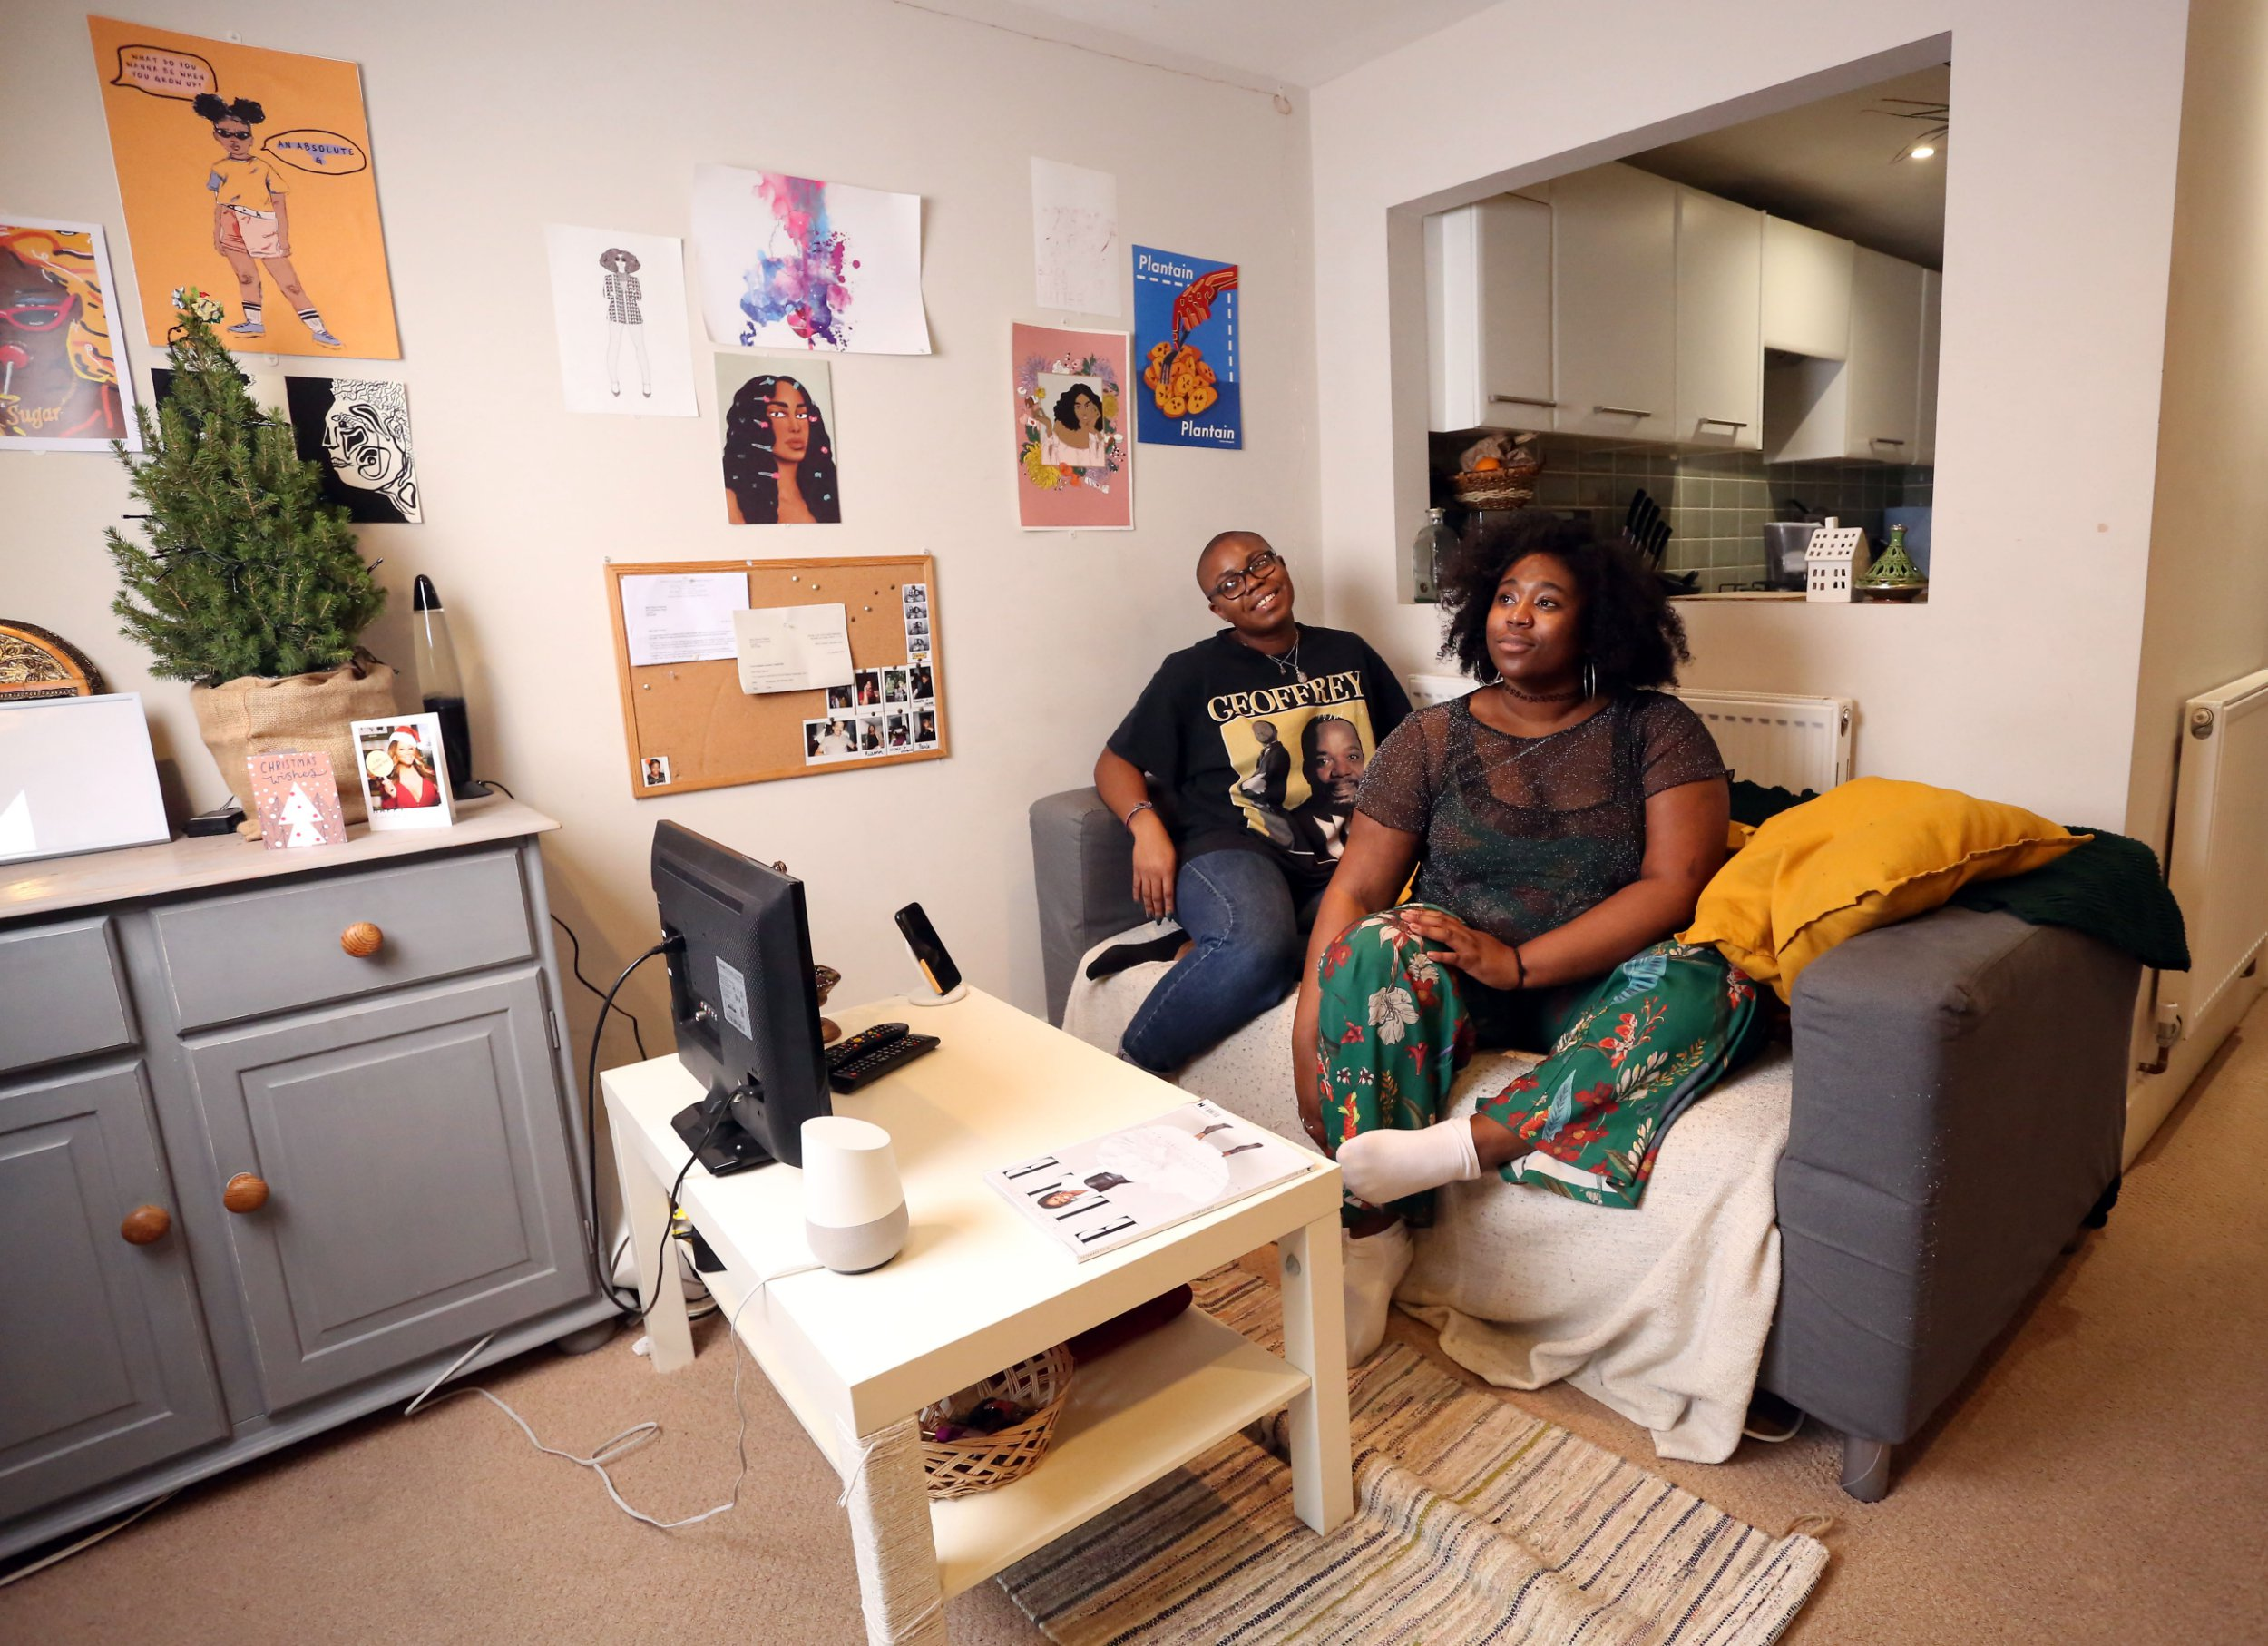 LONDON, UNITED KINGDOM, JANUARY 12TH 2019. WHAT I RENT: PECKHAM RYE Tenants Paula Akpan (left) and Rianna Walcott (right) are pictured in the living room of their two bedroomed flat in Peckham Rye, London, 12th January 2019. Paula pays ?635 and Rianna pays ?665 rent a month, not including bills. Photo credit: Susannah Ireland